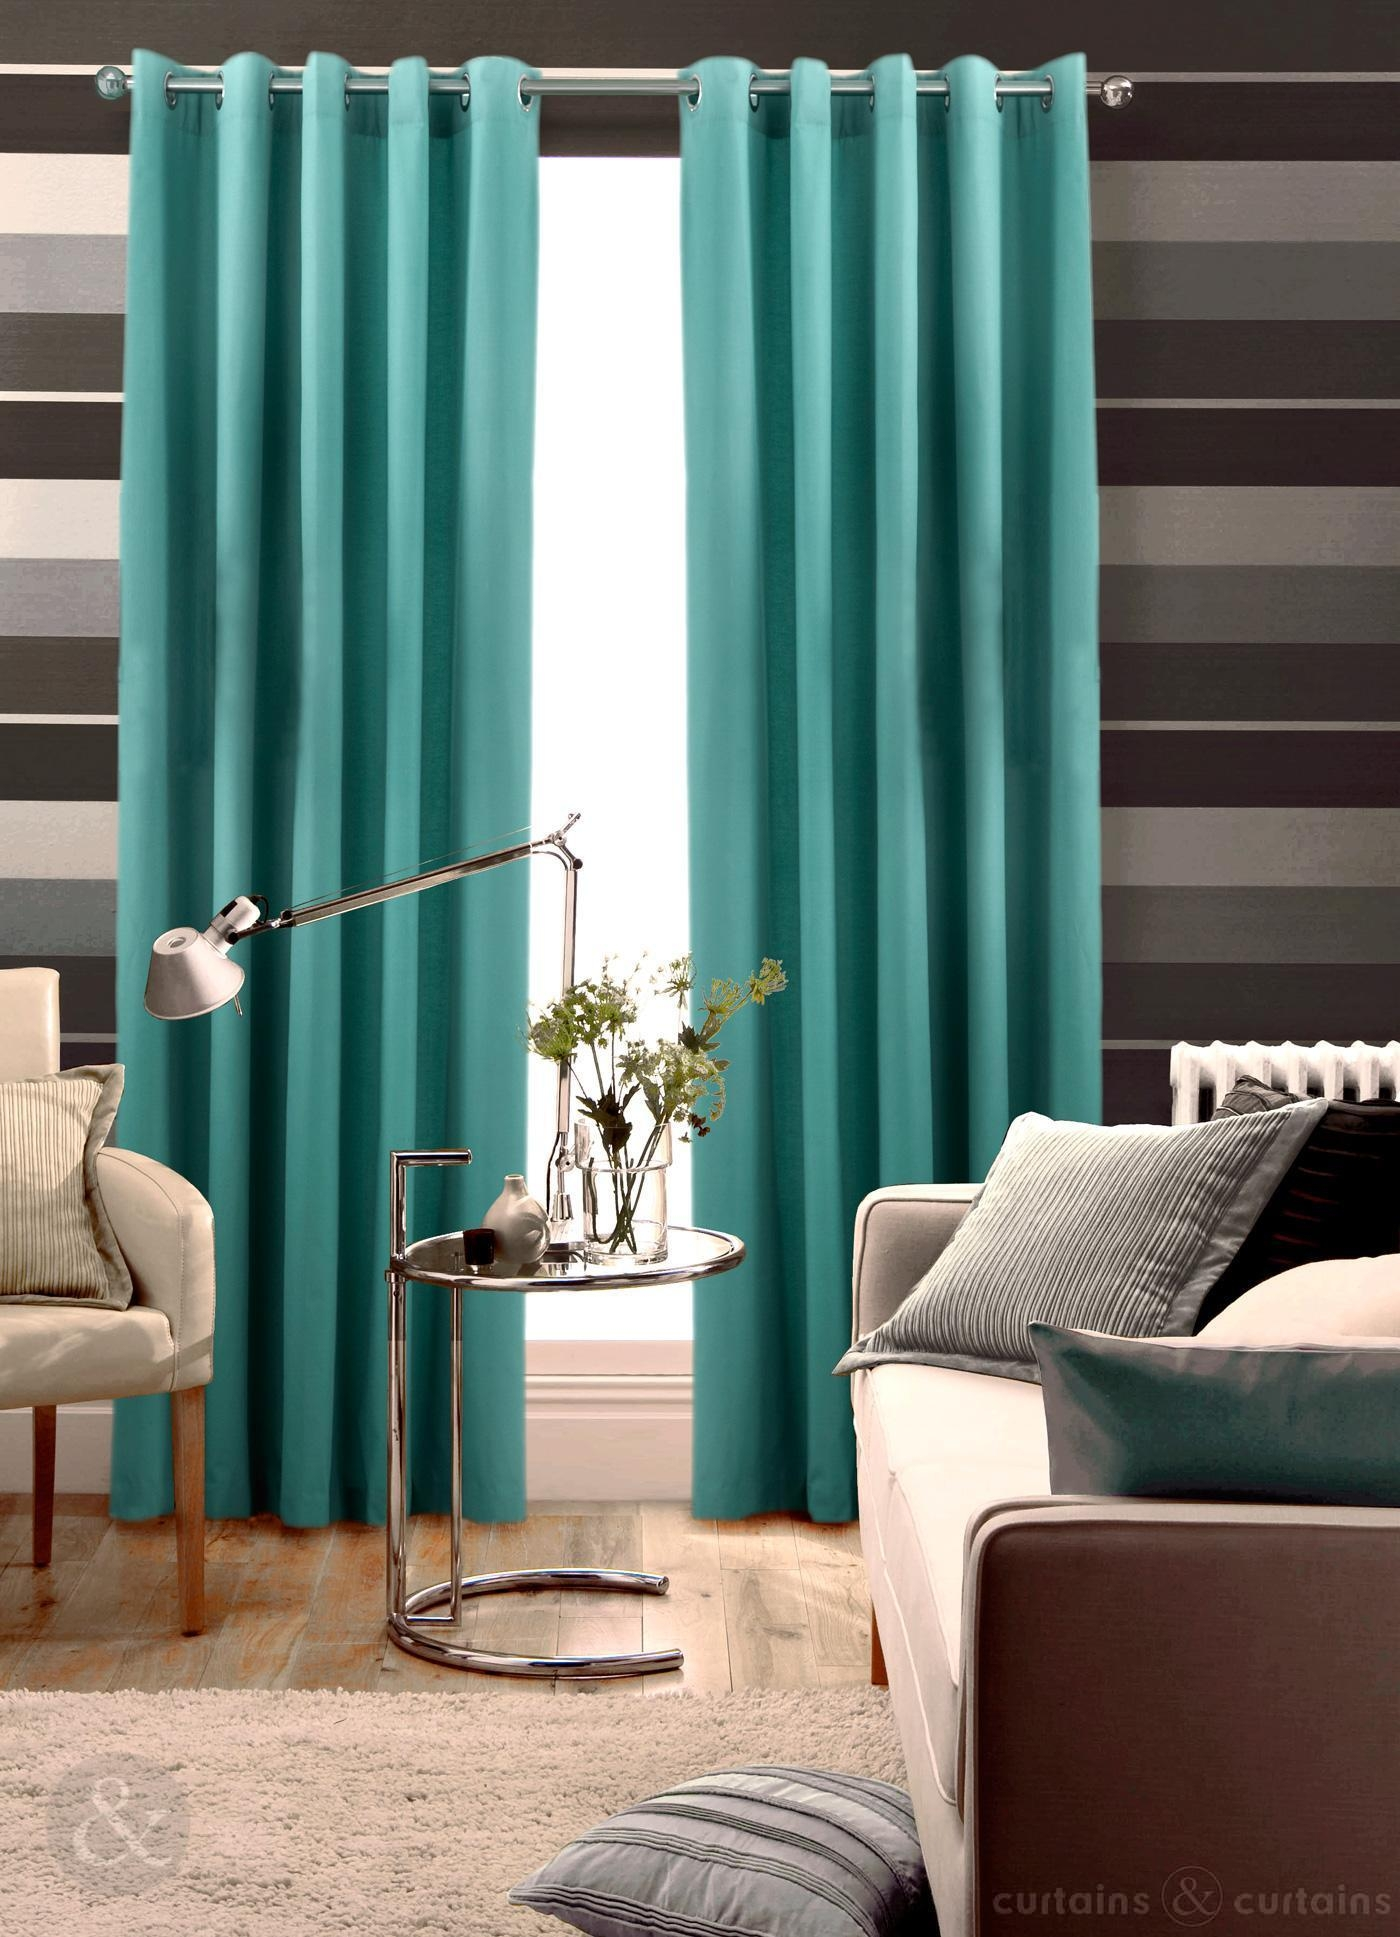 Bedroom Curtain Ideas Elegant Best Bedroom Curtain Ideas Design Intended For Curtains For Bedrooms (Image 3 of 25)